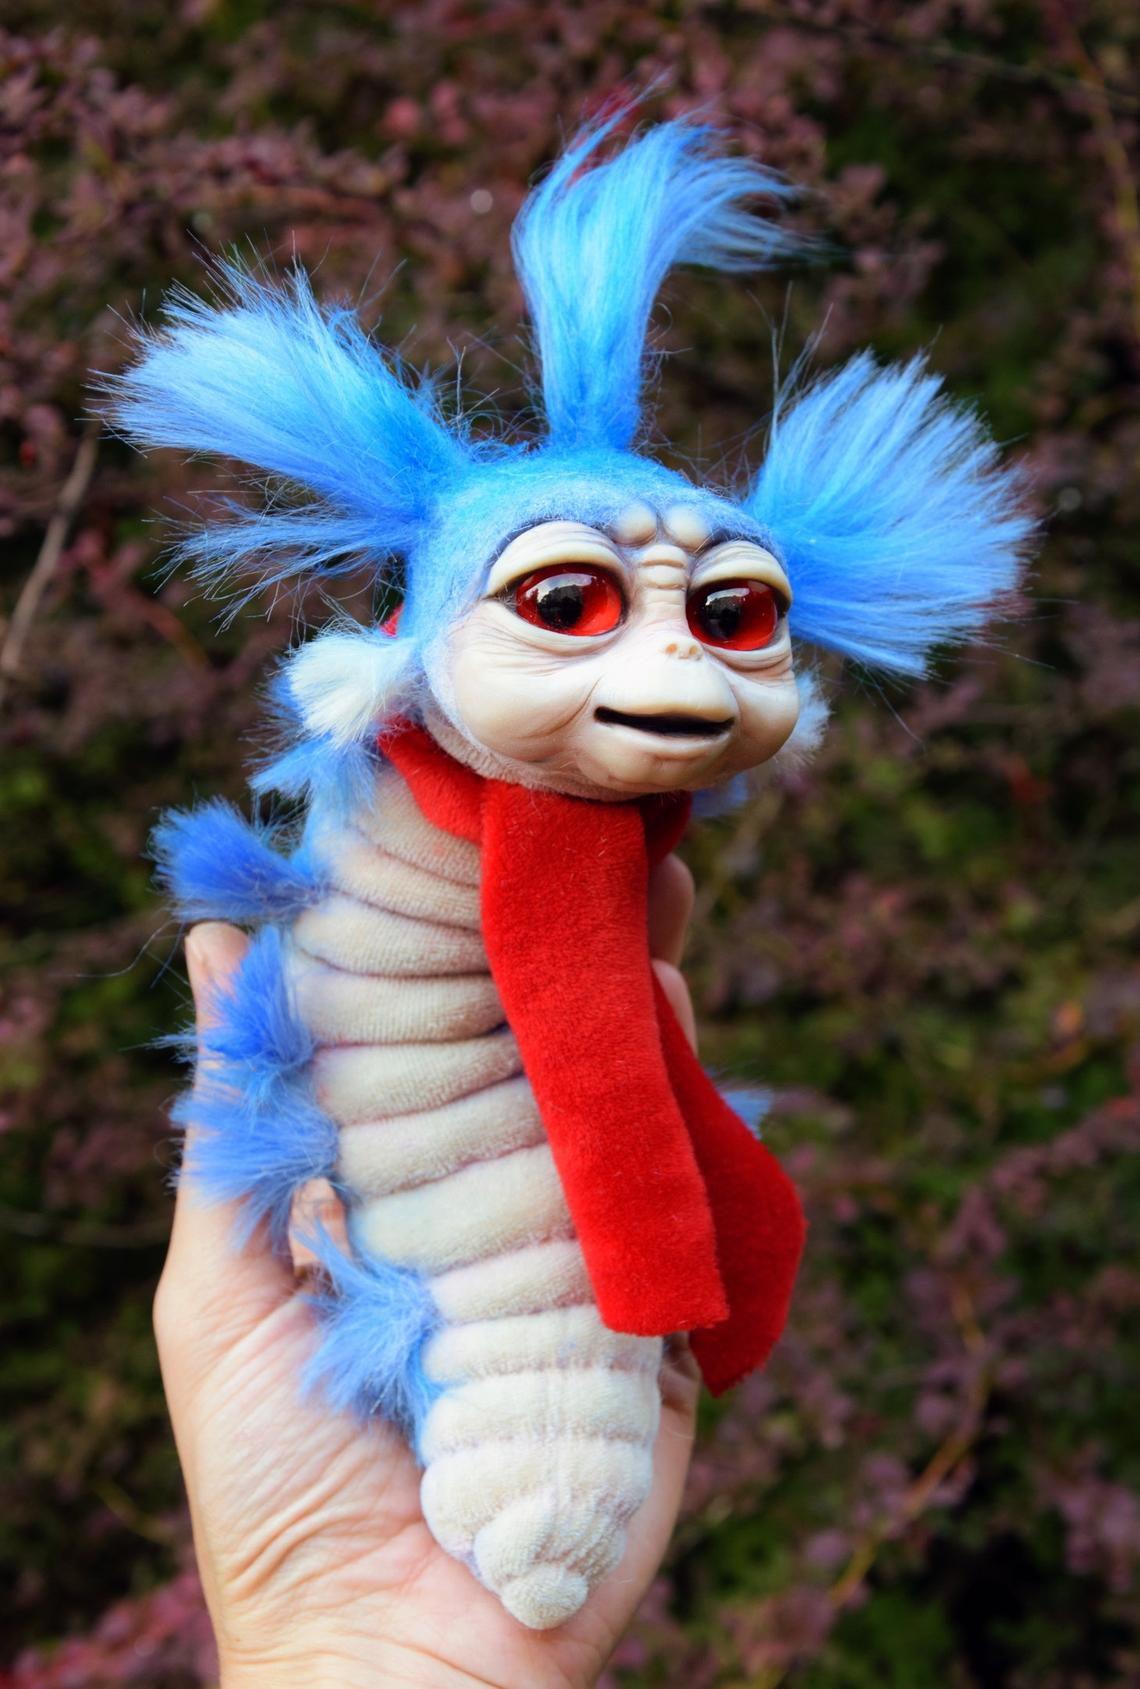 Ello Worm from Labyrinth Toy